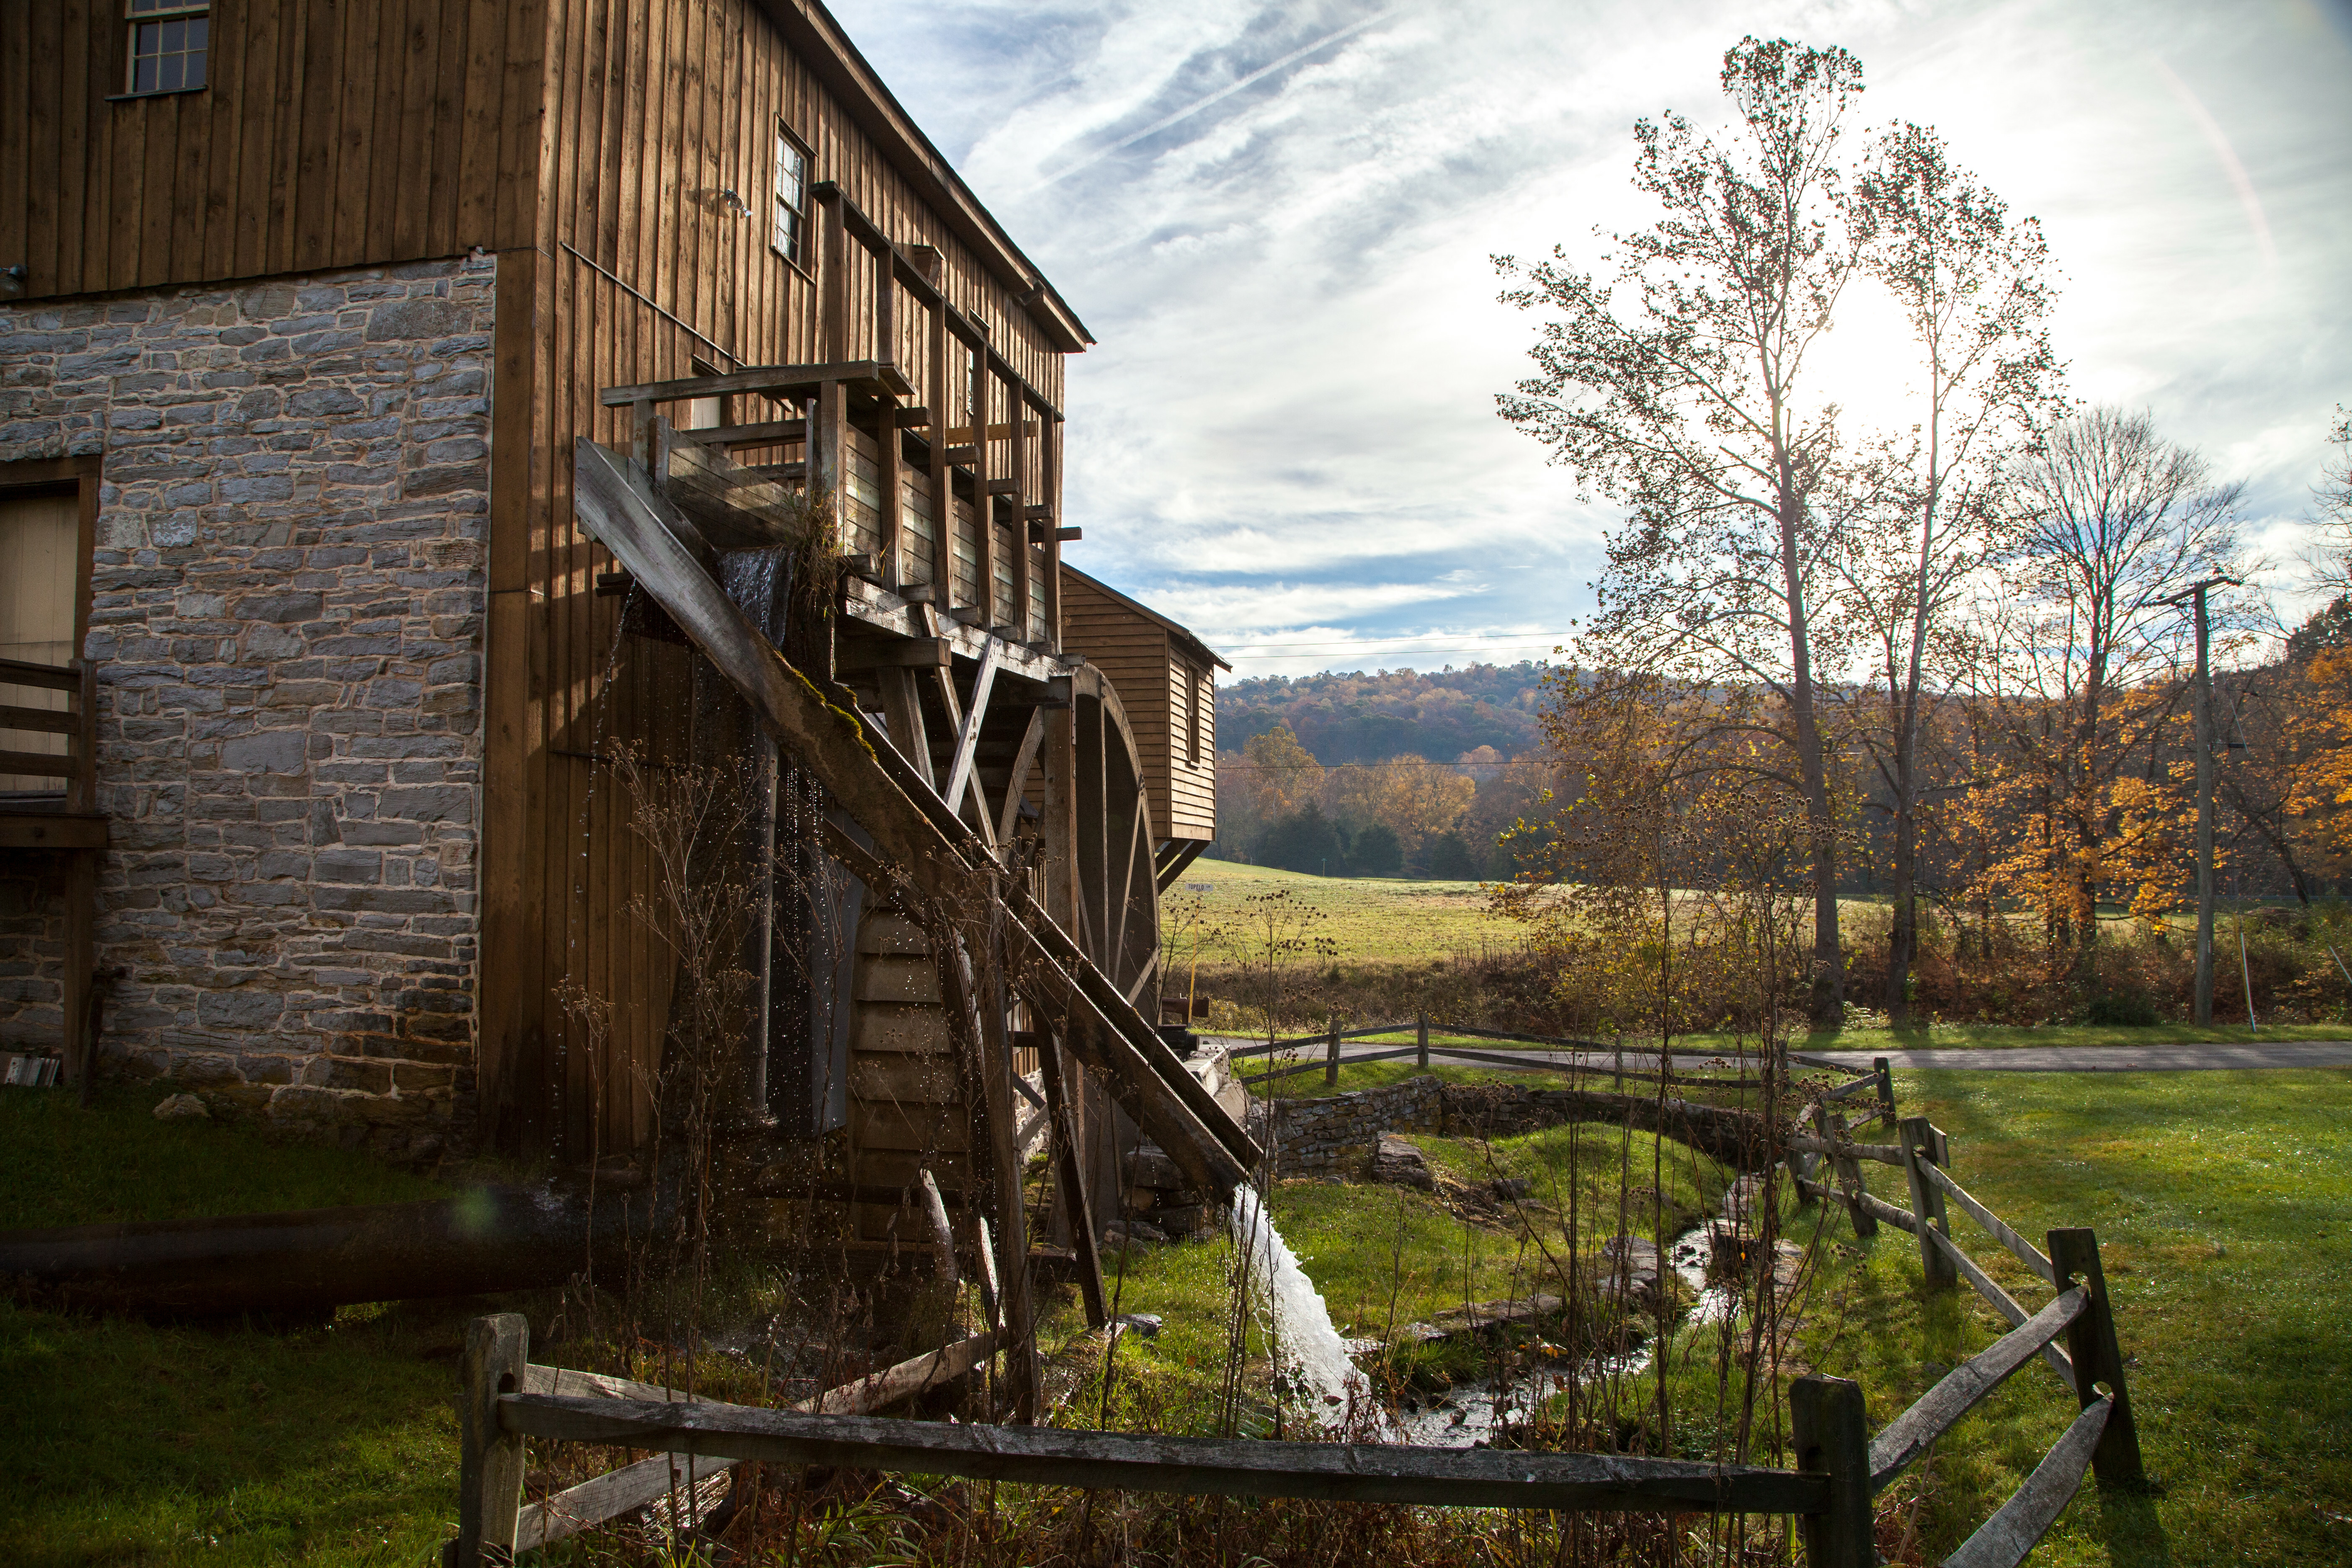 Wade's Mill. Photo by Sarah Hauser, Virginia Tourism Corporation